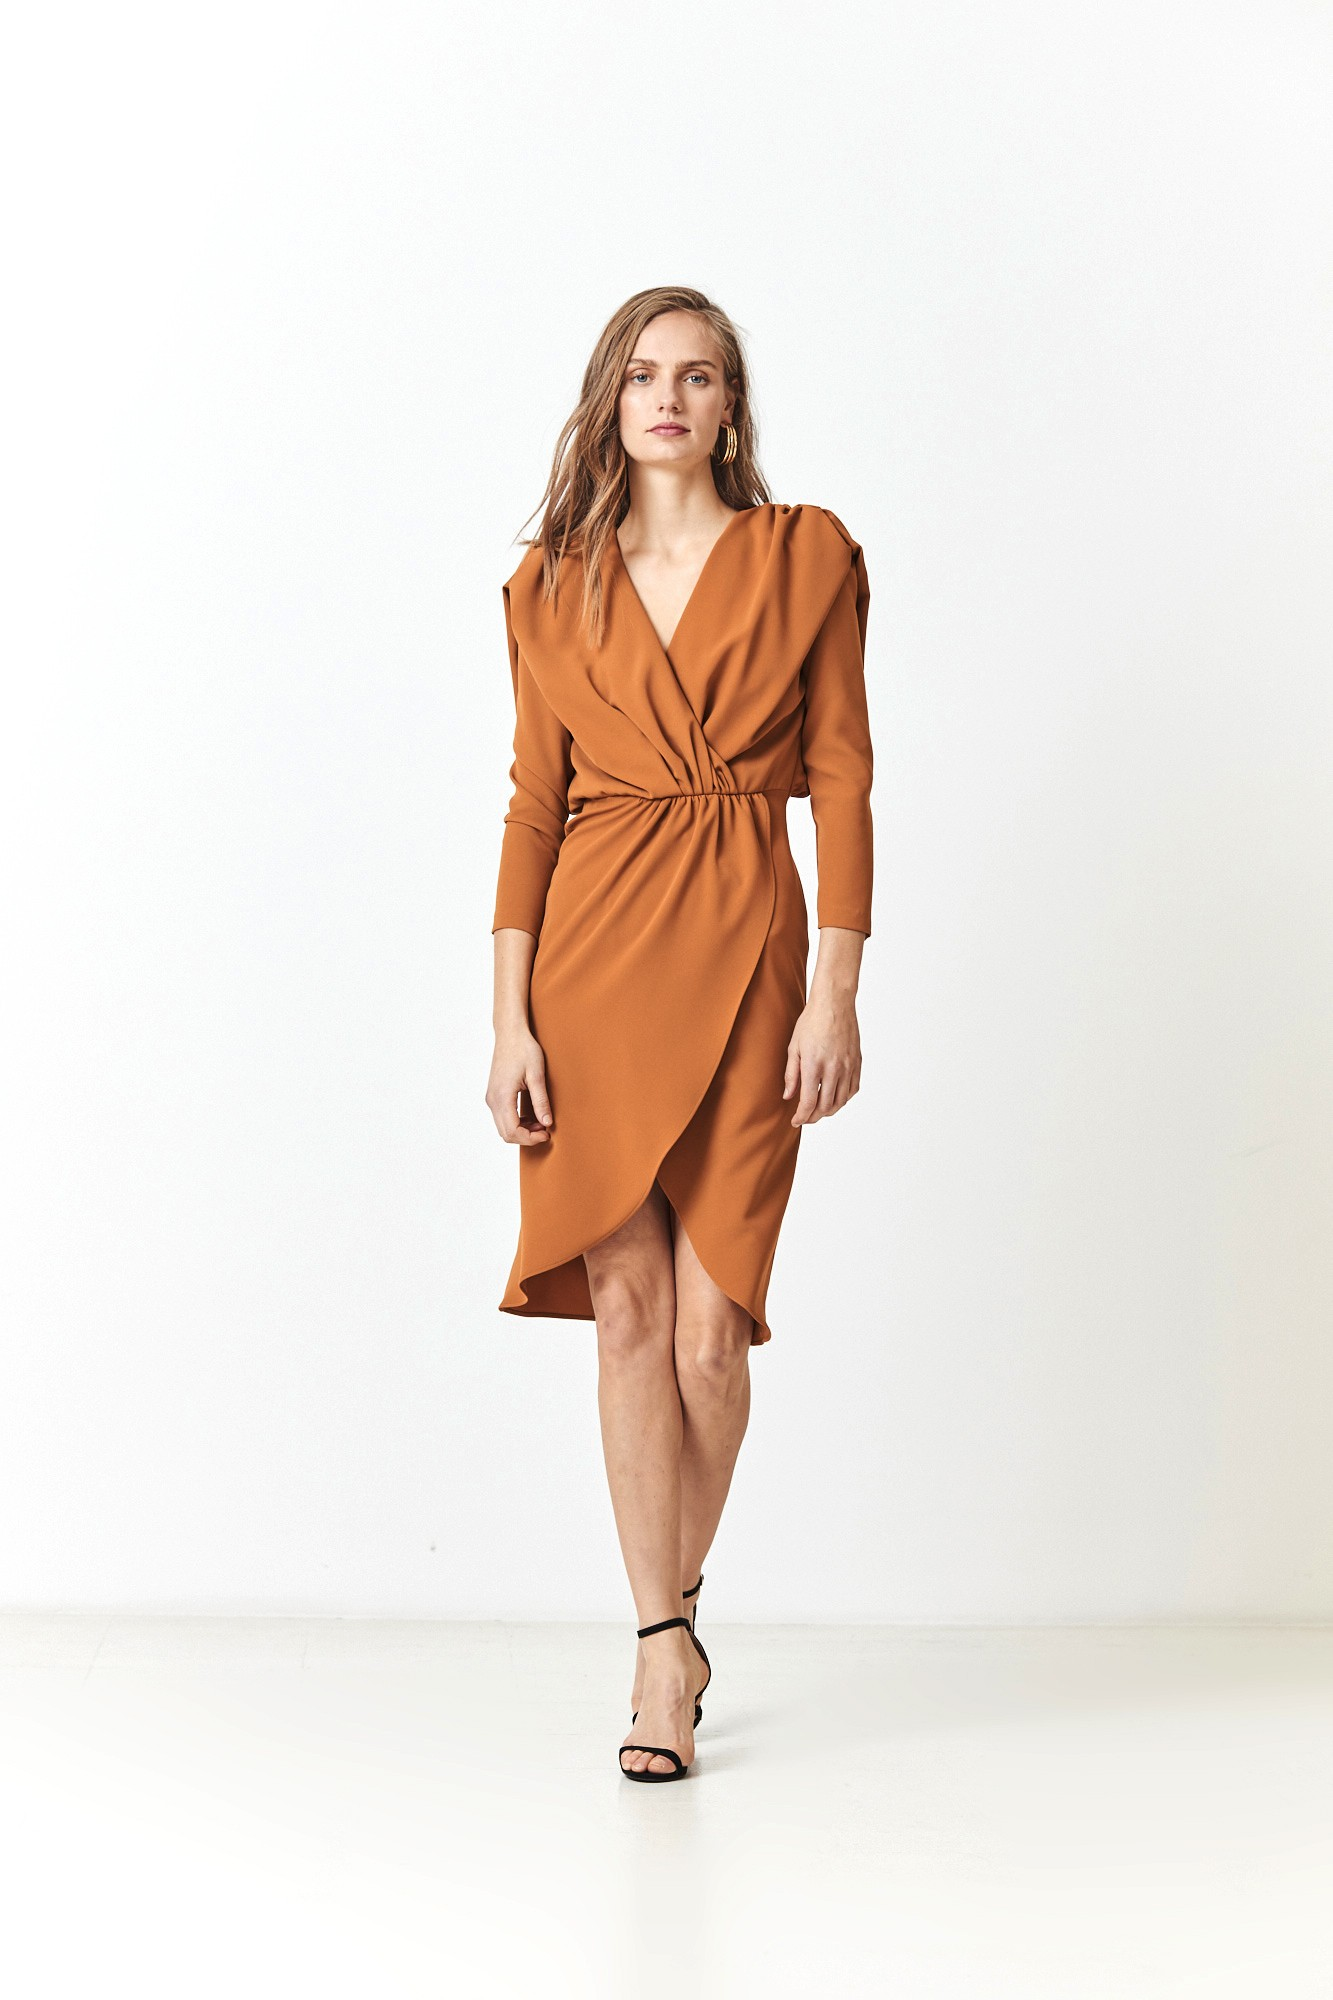 ANITA CAMEL DRESS